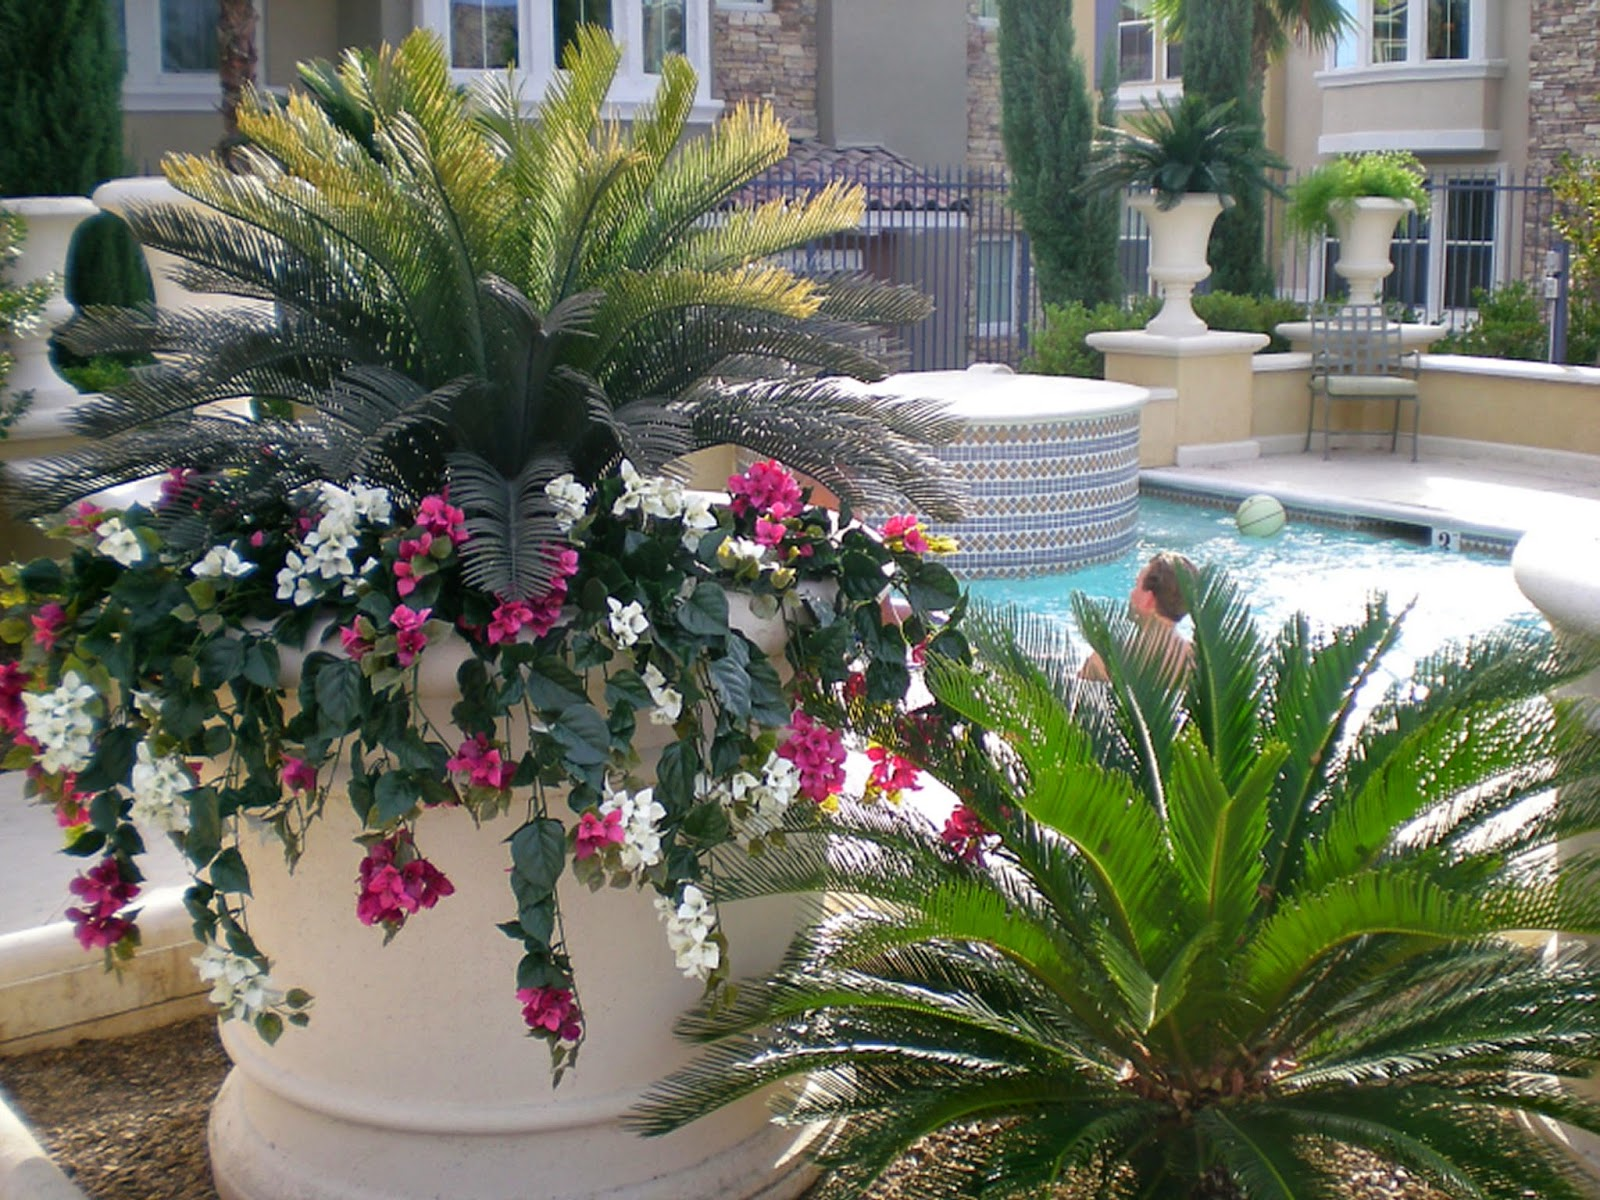 Decorating tips for your home or office for Outdoor plants and flowers